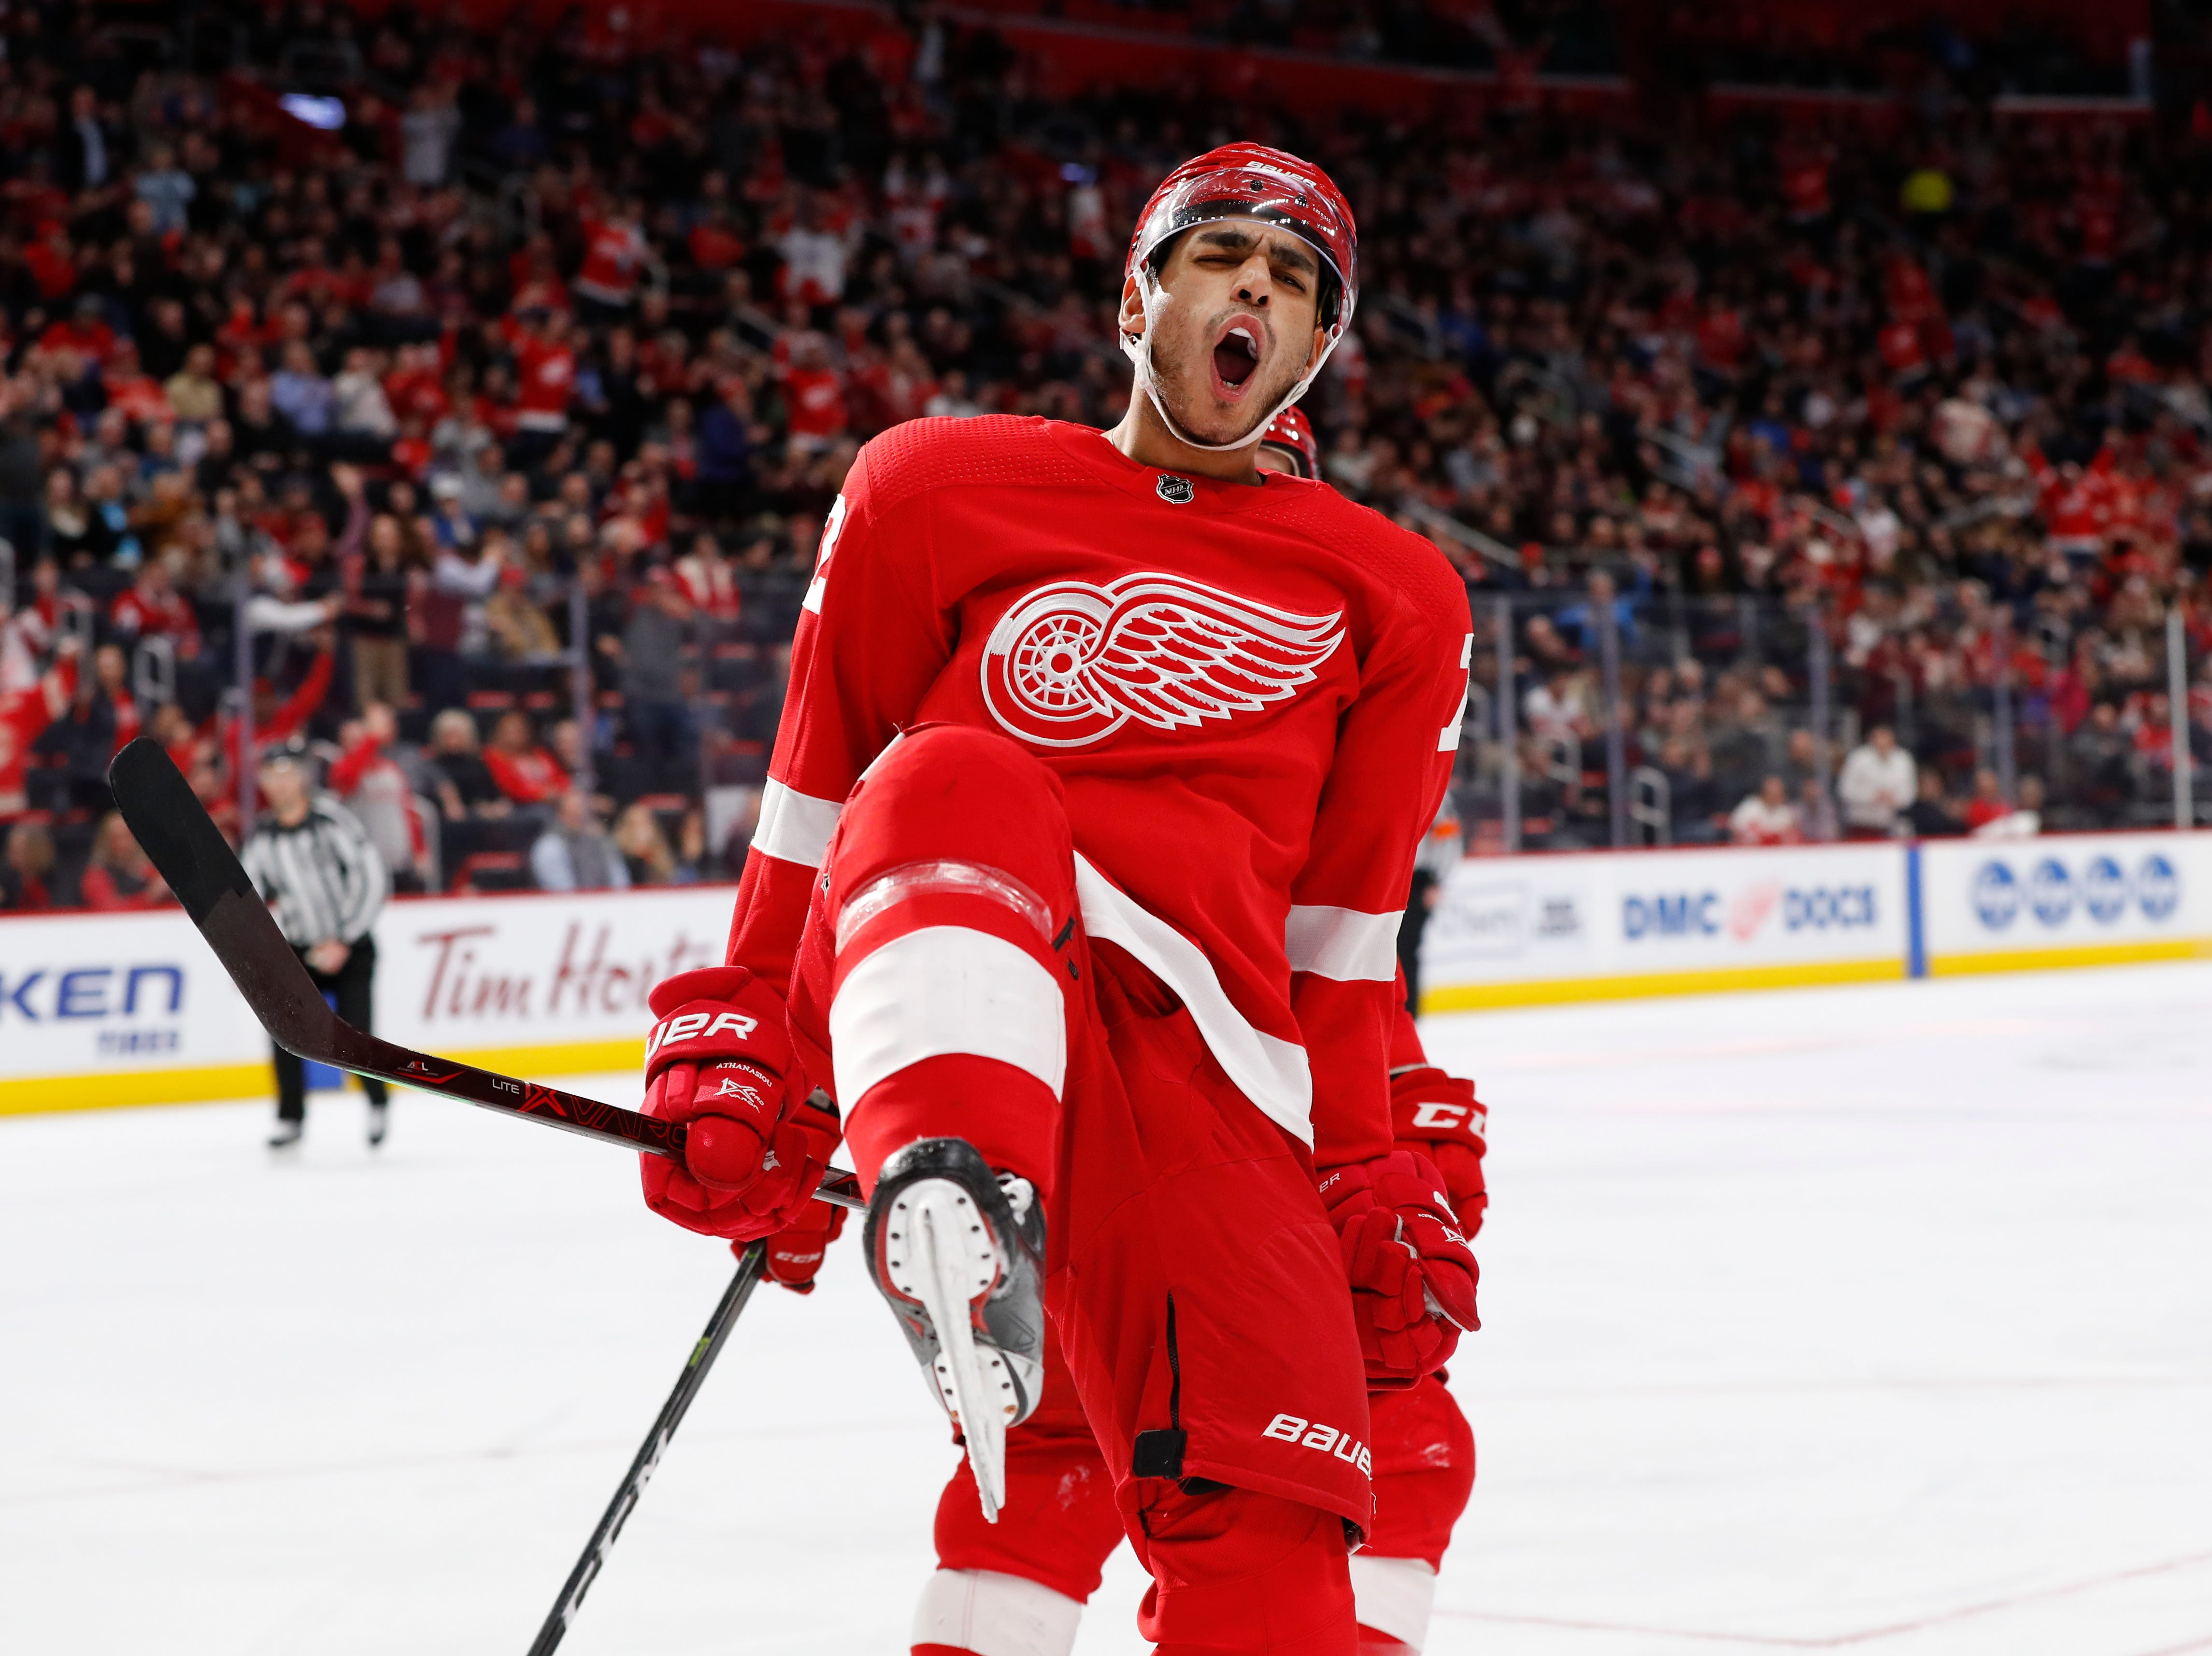 Detroit Red Wings center Andreas Athanasiou celebrates his goal against the Montreal Canadiens in the second period.